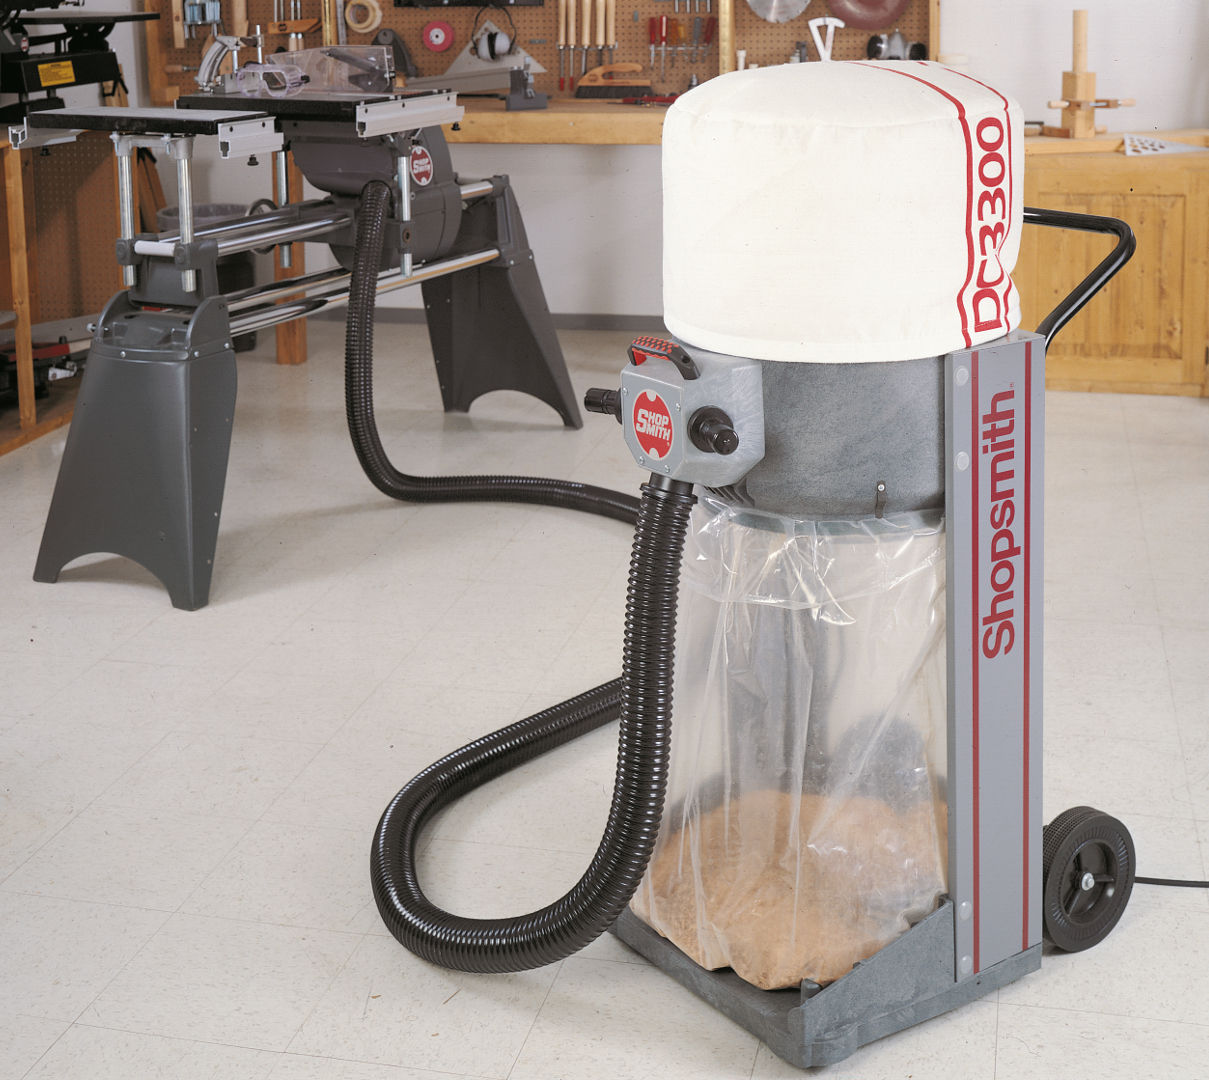 Workshop Floor Plans Shopsmith Dc 3300 Dust Collector